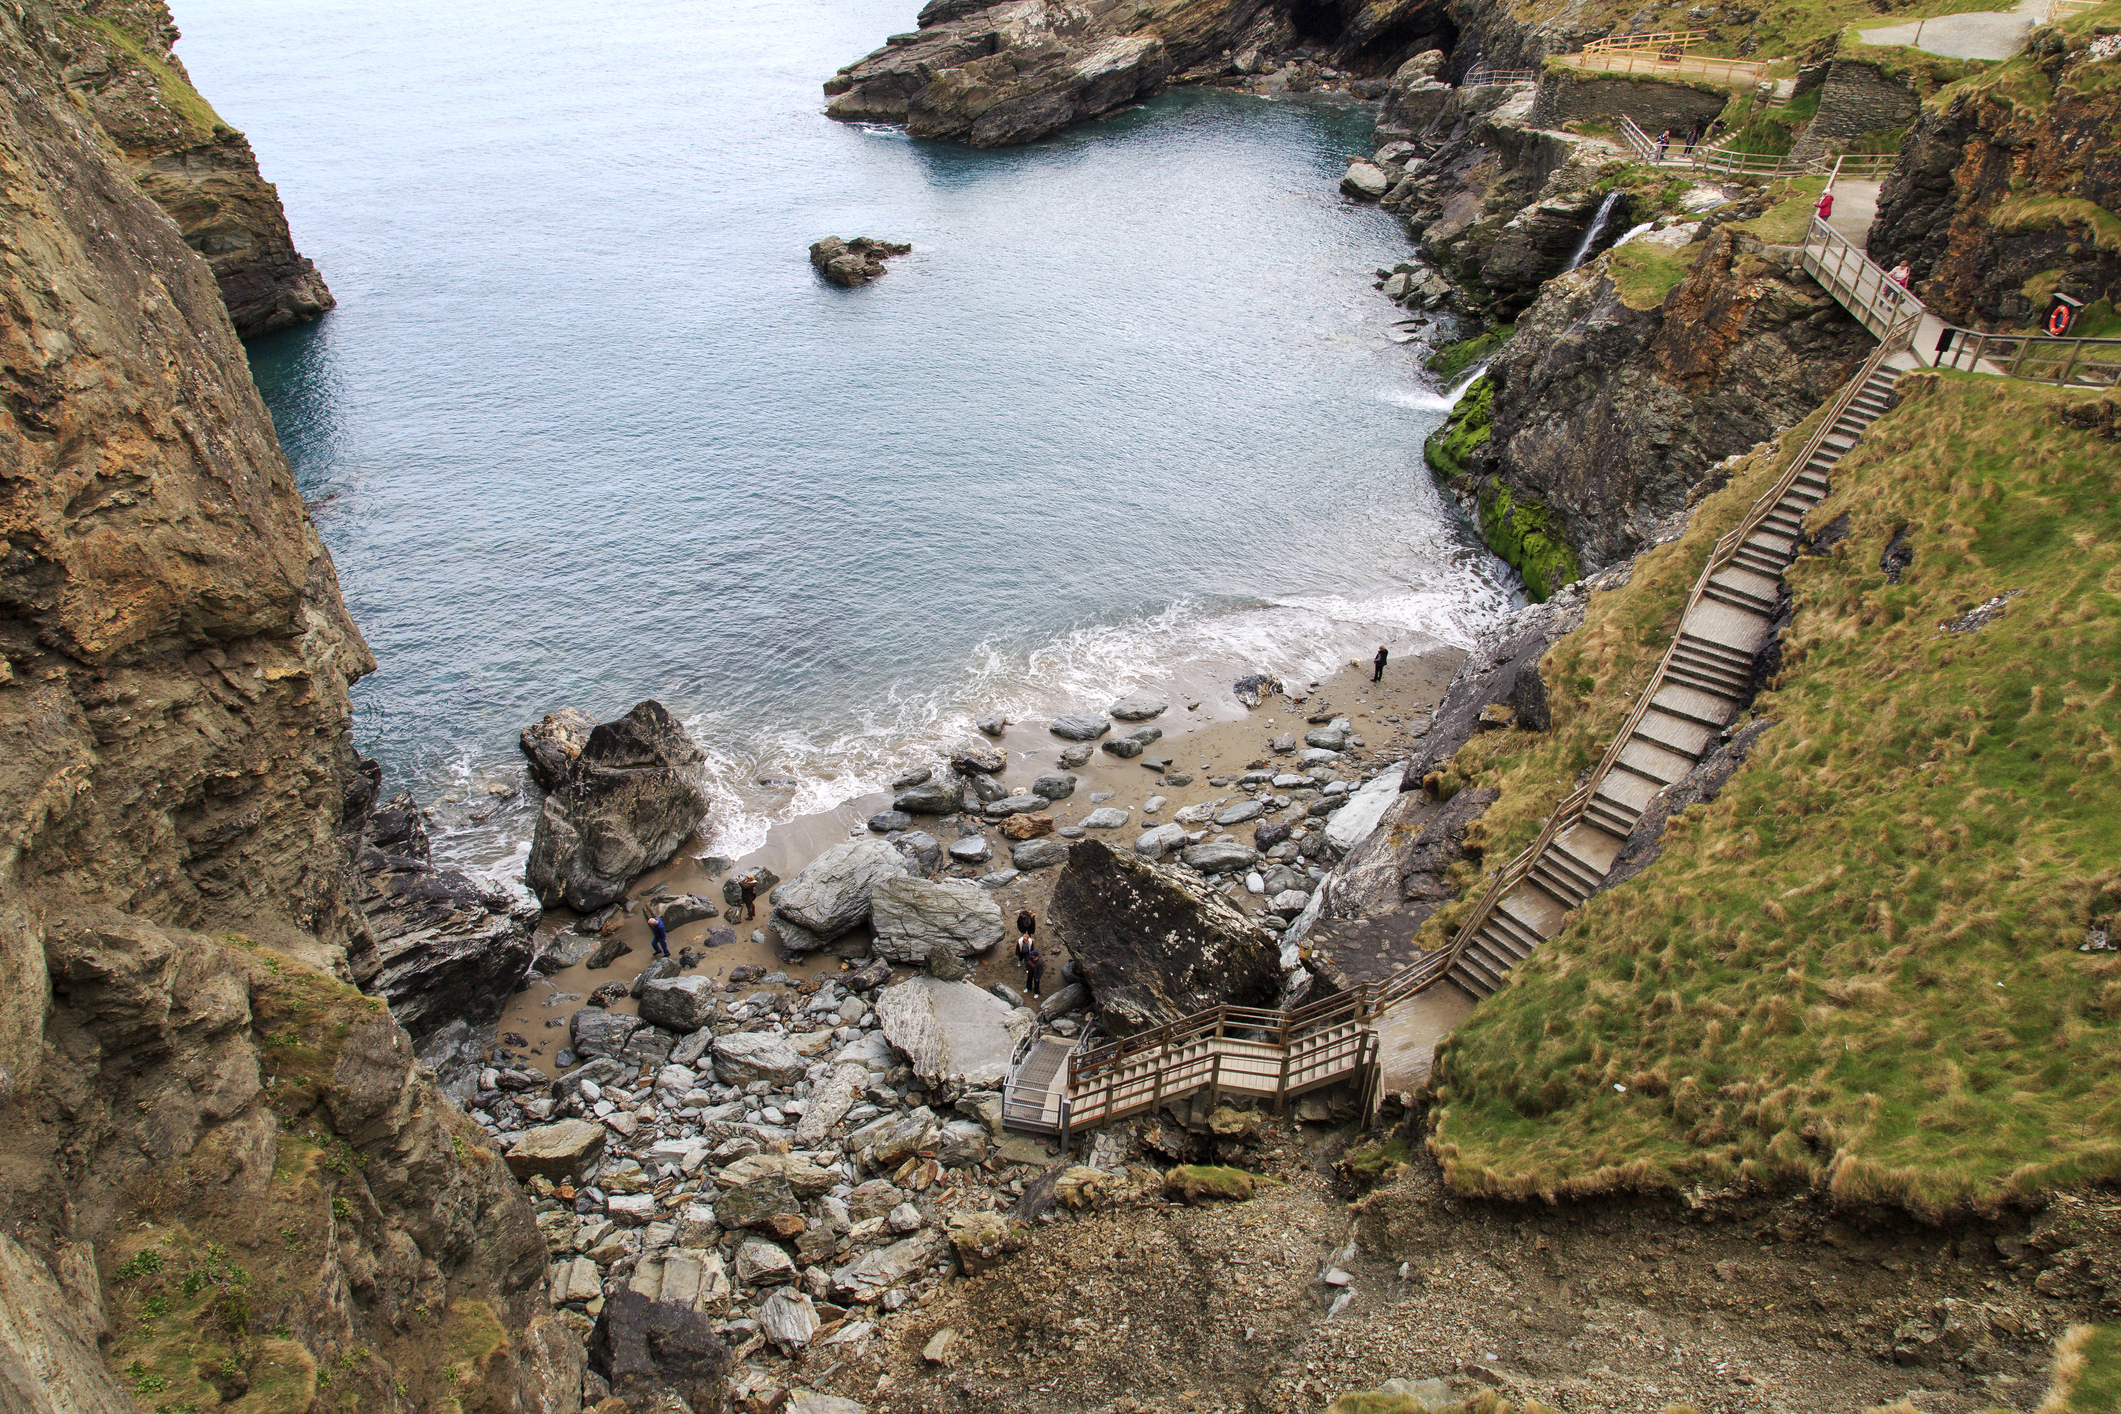 Cornwall, UK: April 14, 2016: Tourists enjoying the beach at the bottom of some steps at Tintagel. Tintagel is maintained by English Heritage who are also responsible for Stonehenge and many other ancient sites across England.